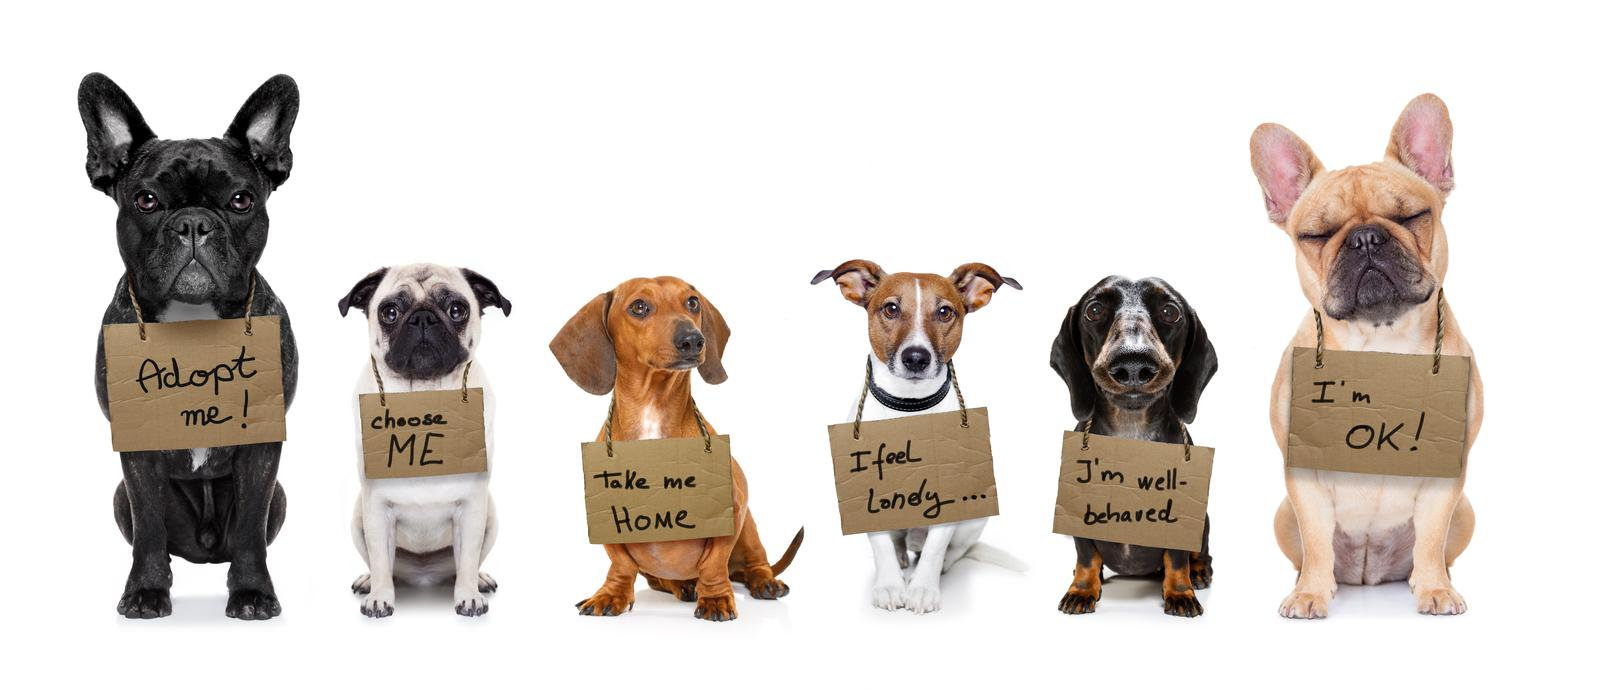 homeless-row-of-dogs-waiting-for-people-to-adopt-or-buy-them